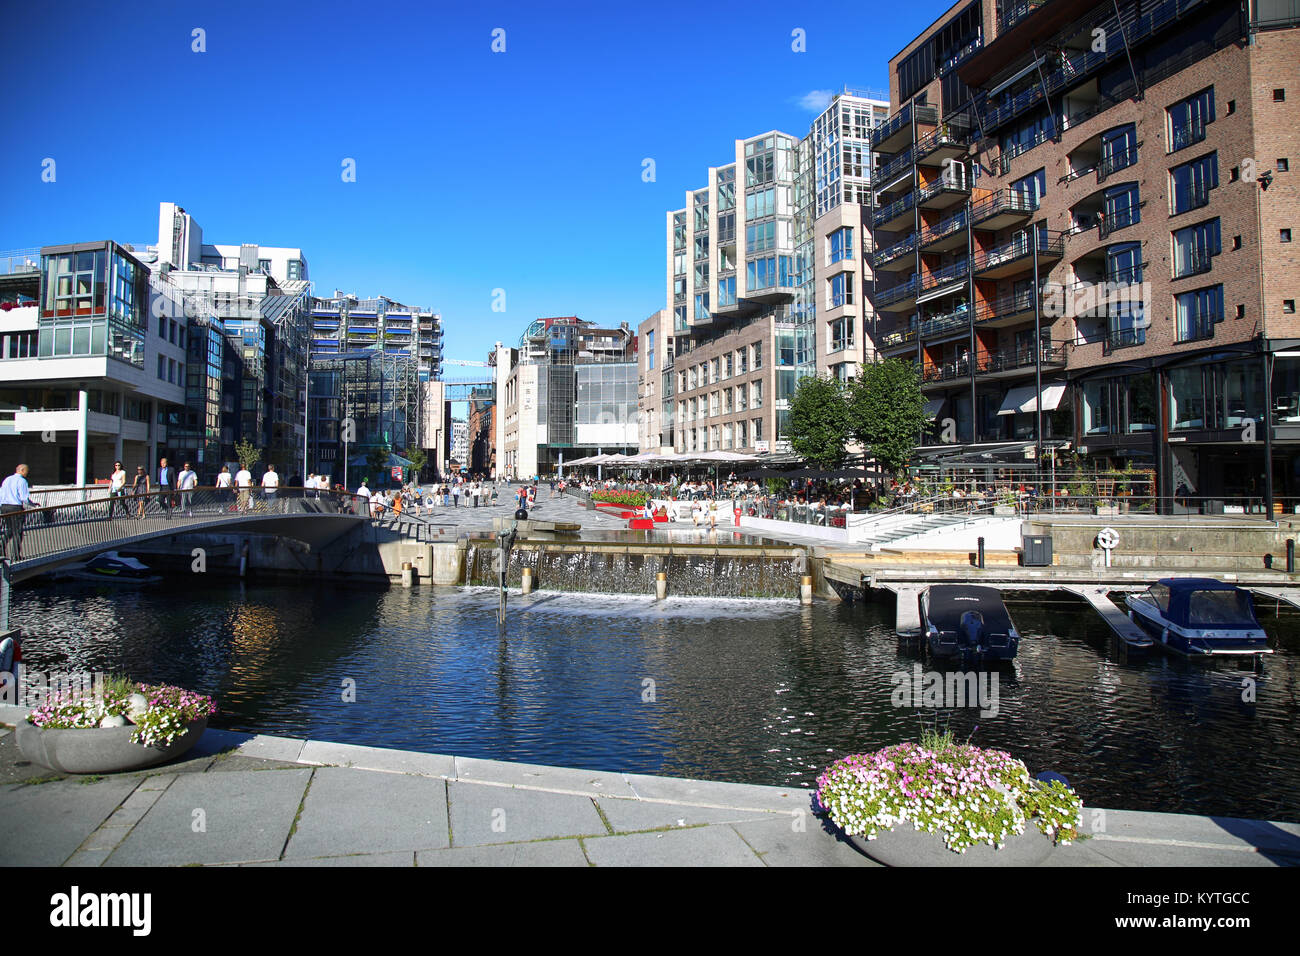 OSLO, NORWAY – AUGUST 17, 2016: People walking on wonderful modern residential district Aker Brygge with lux apartments, Stock Photo